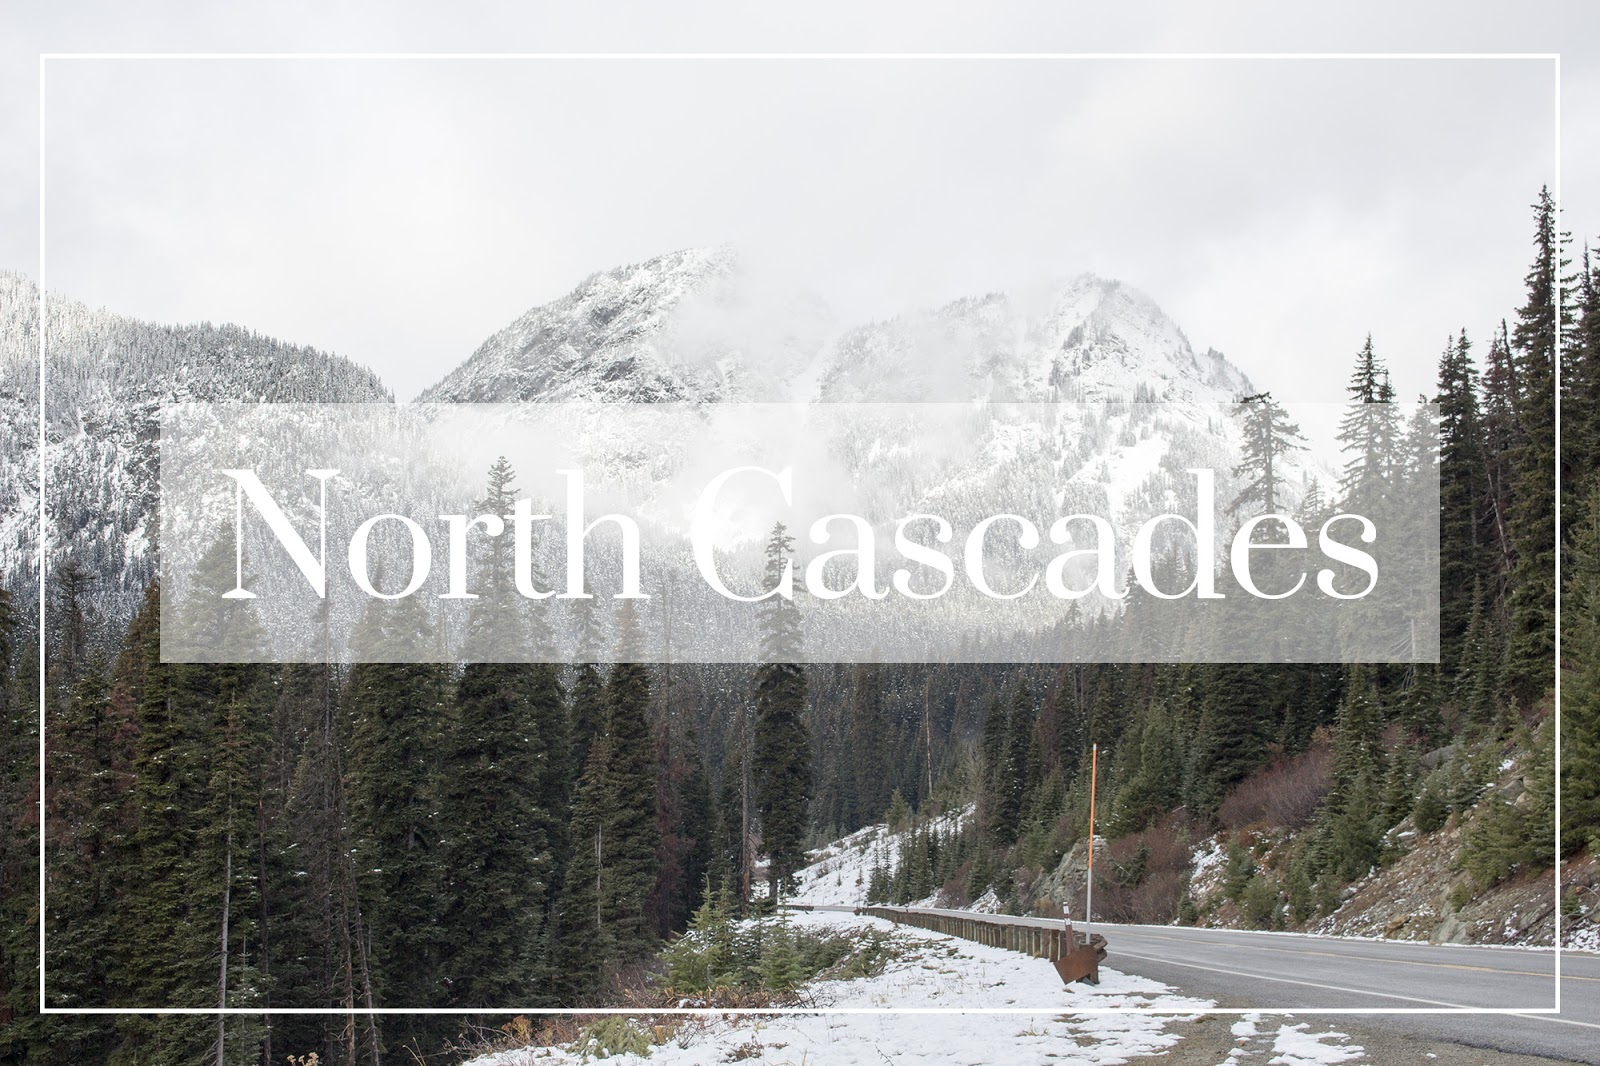 City guide voyage North Cascades National Park USA